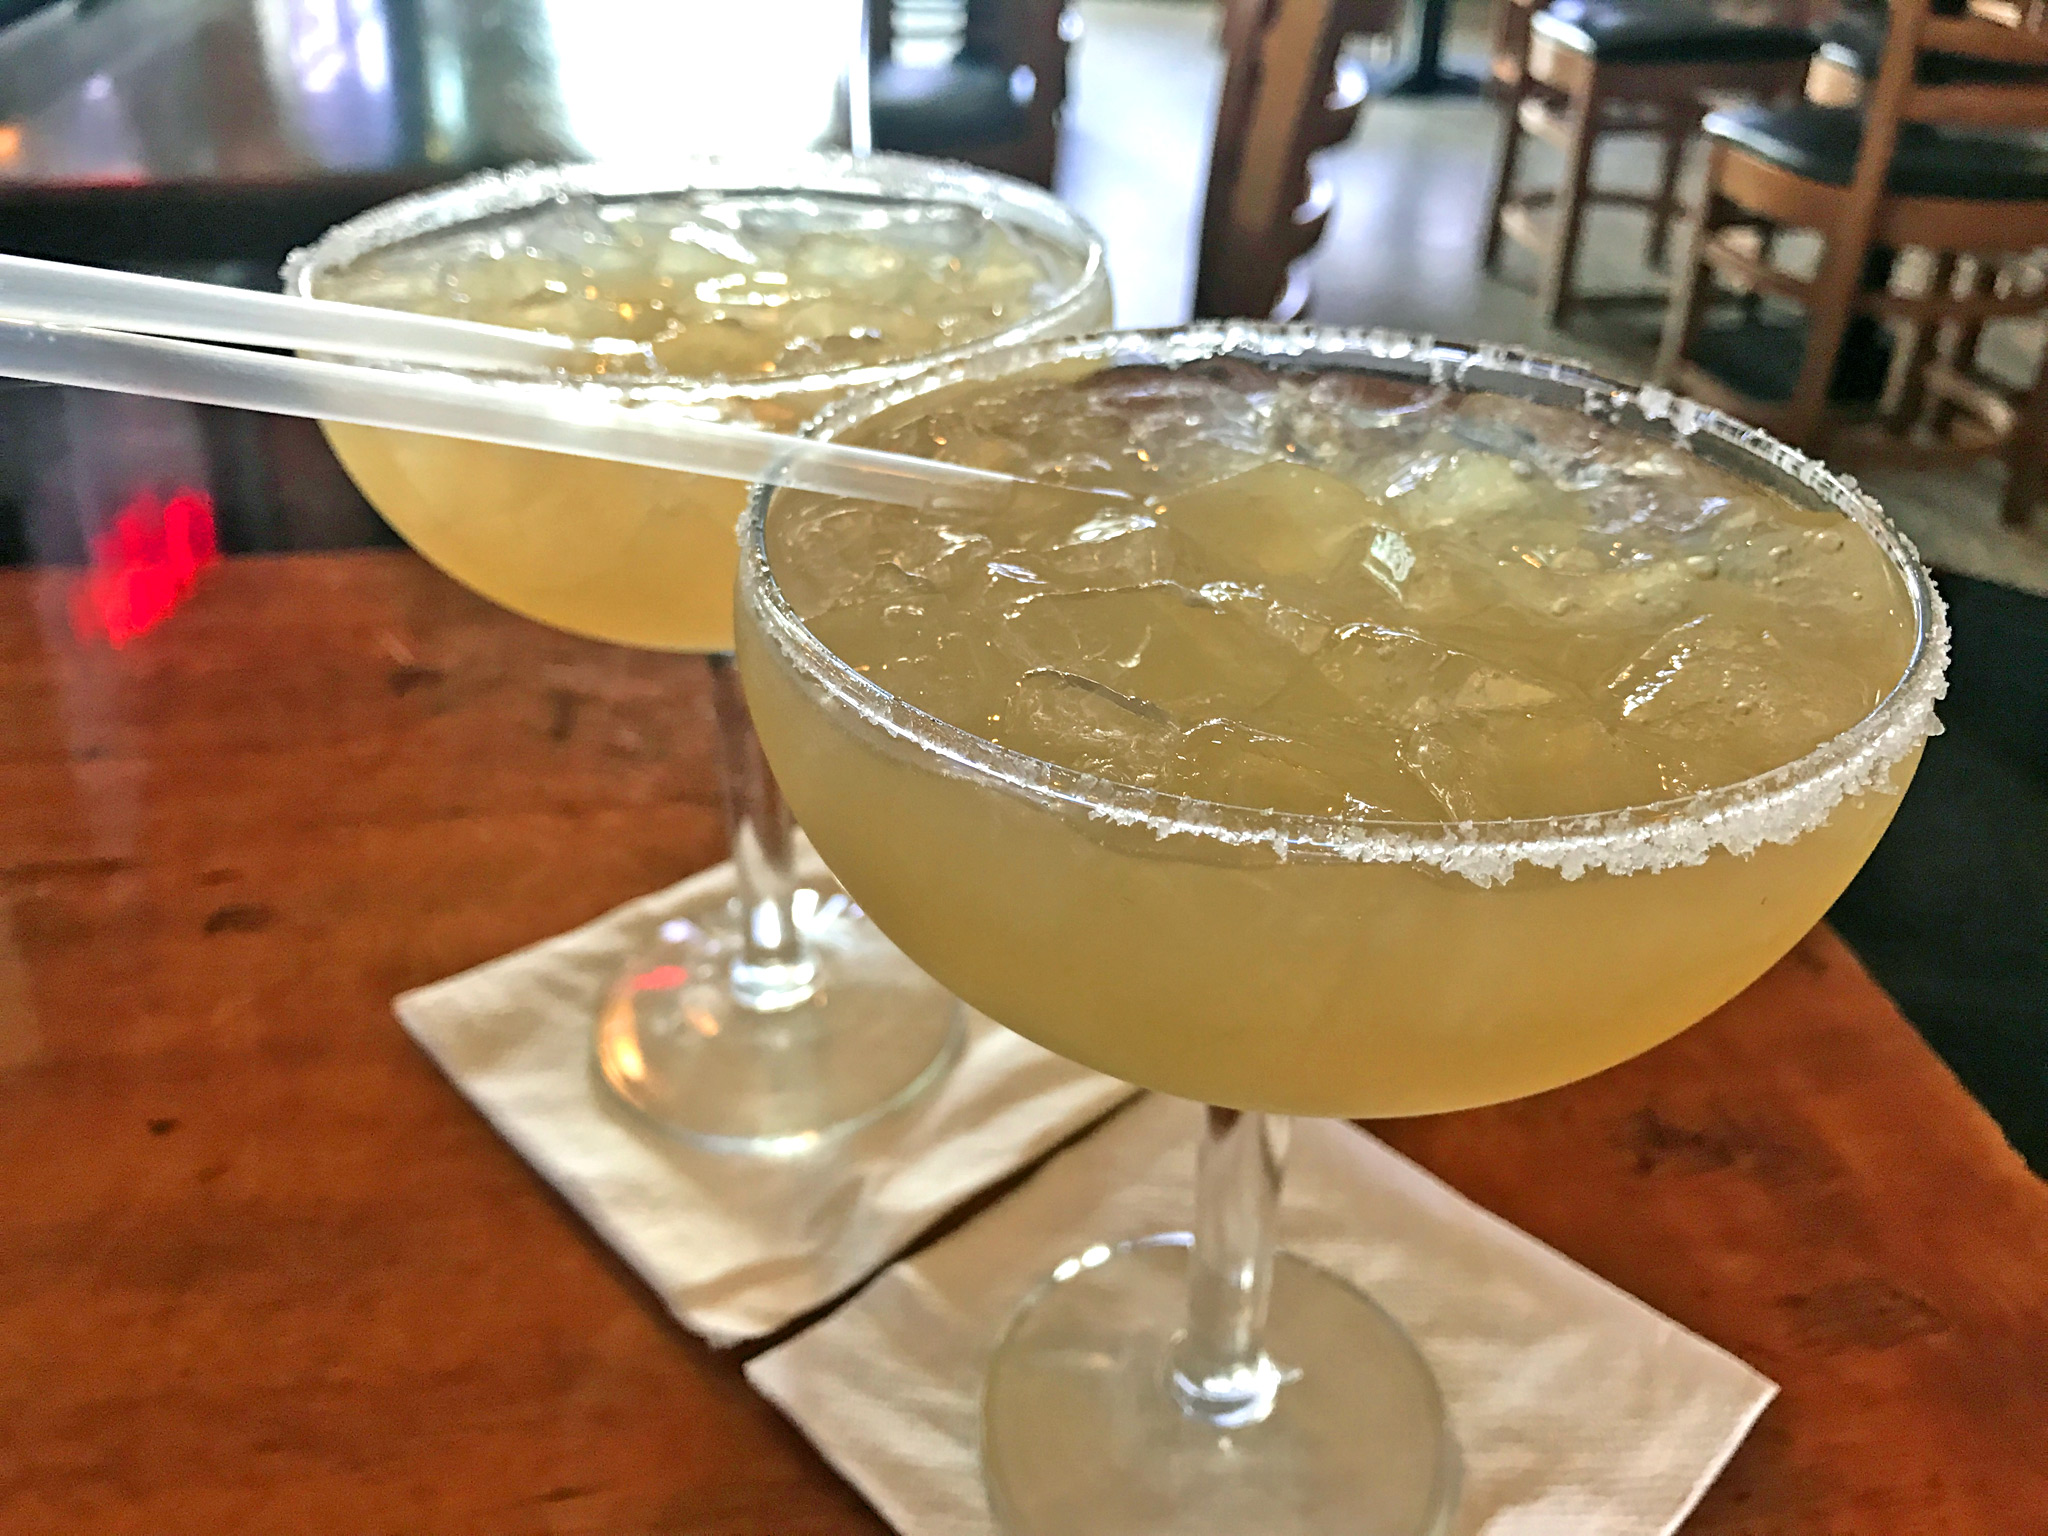 Agave has one of the best house Margaritas in St. Pete